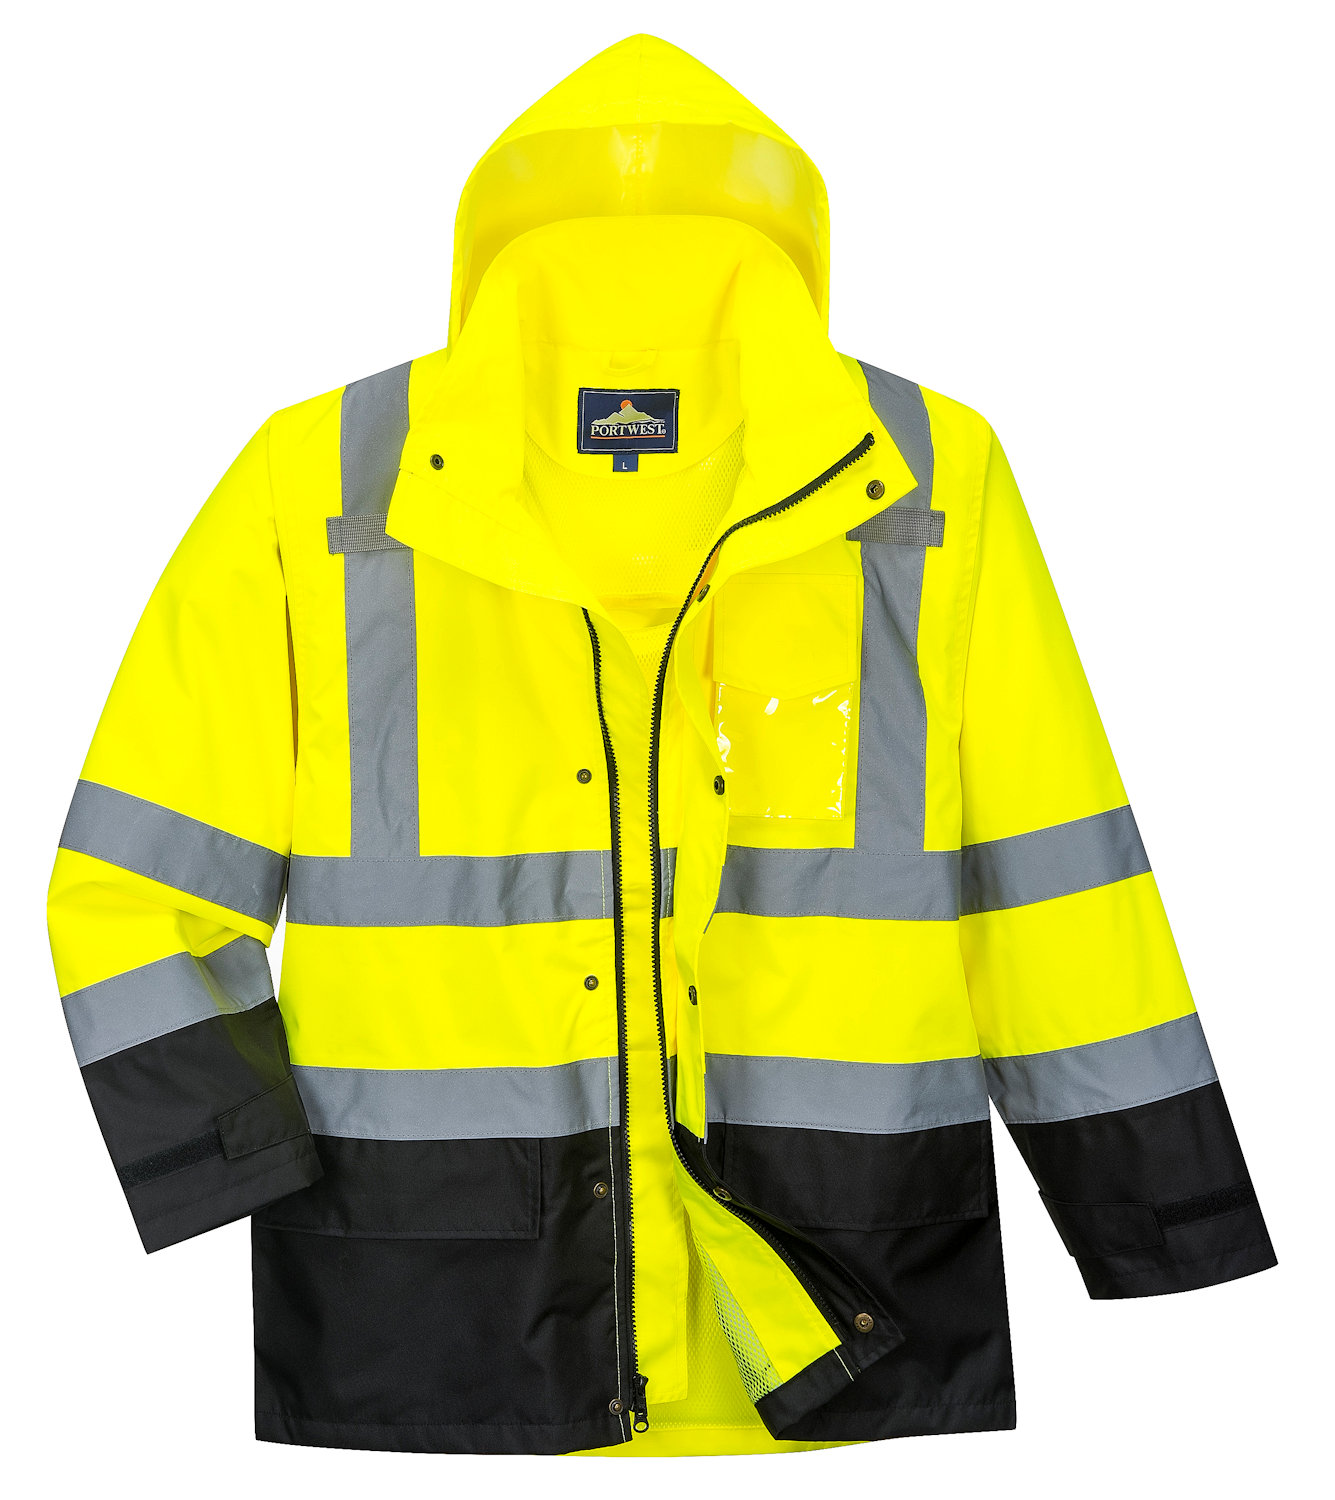 portwest us366 rain jacket